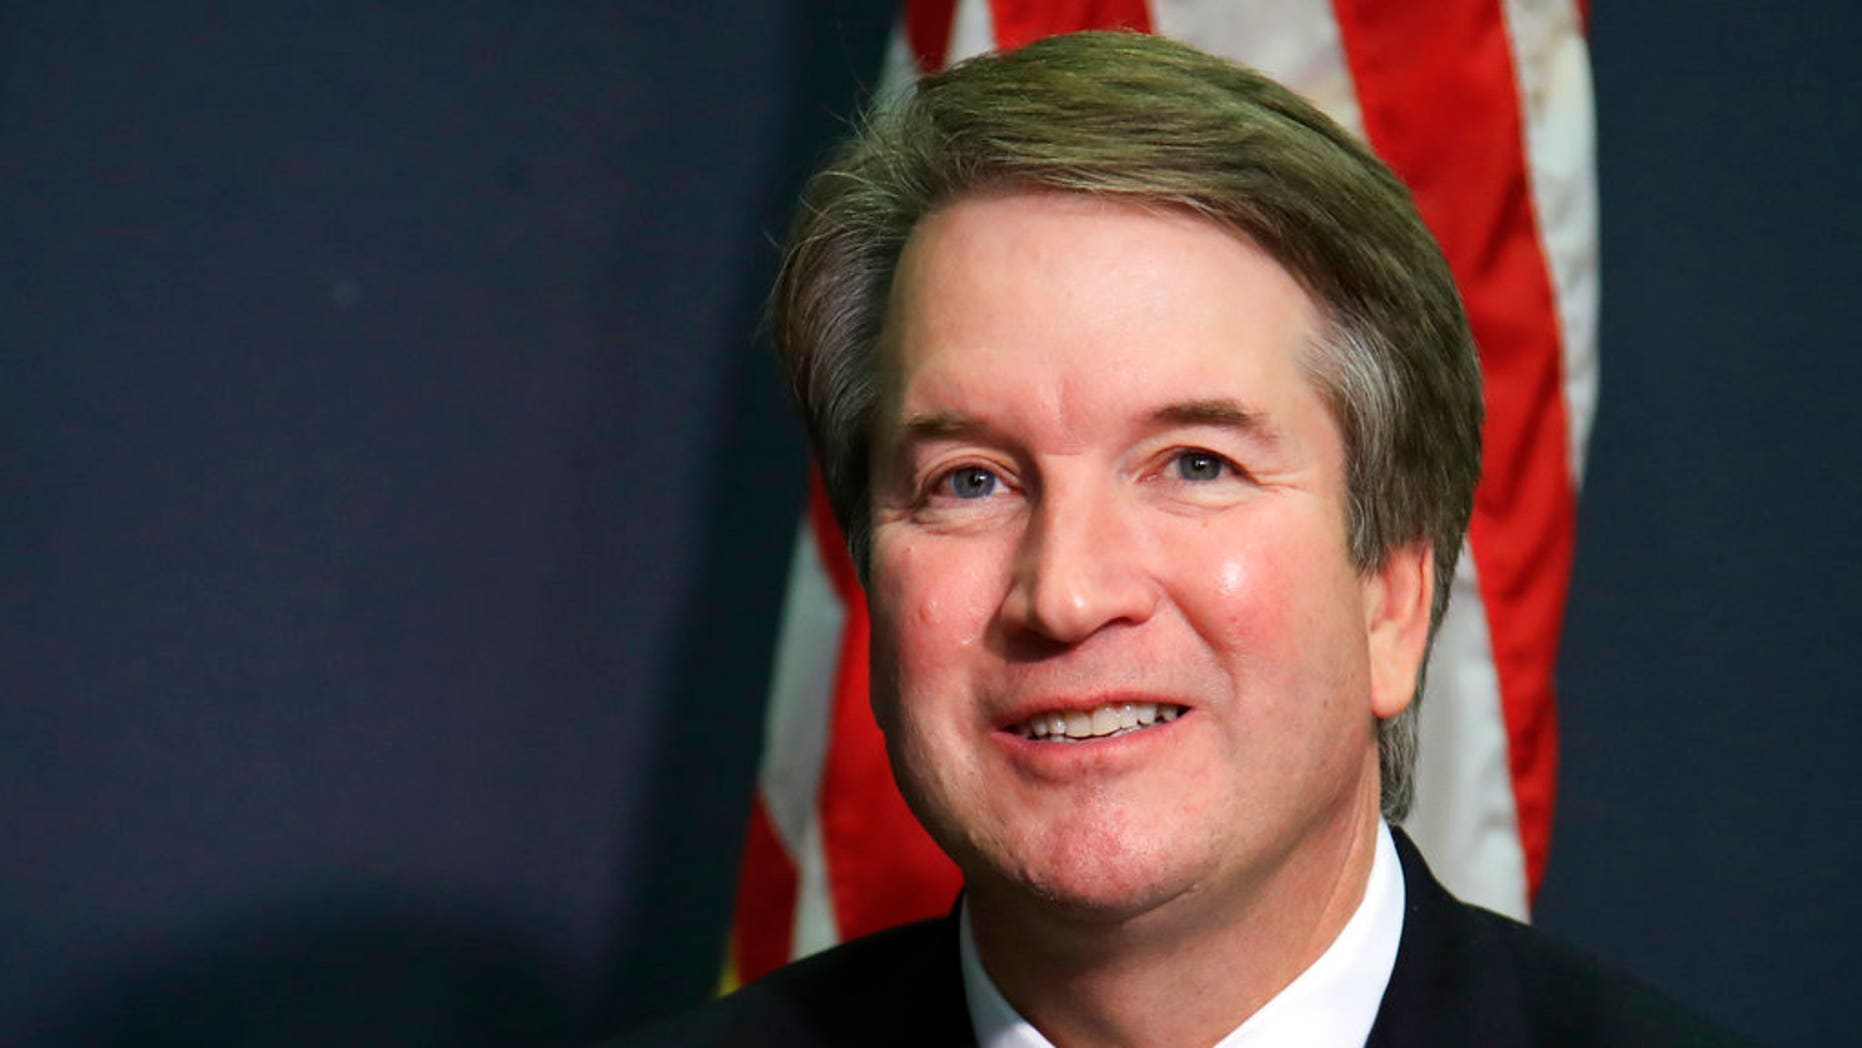 FILE - In this July 19, 2018, file photo, Supreme Court nominee Brett Kavanaugh glances at reporters during a meeting with Sen. James Lankford, R-Okla., on Capitol Hill in Washington. Kavanaugh has been a conservative team player, and the Supreme Court nominee has stepped up to make a play at key moments in politics, government and the law dating to the Bill Clinton era.  (AP Photo/Manuel Balce Ceneta, File)